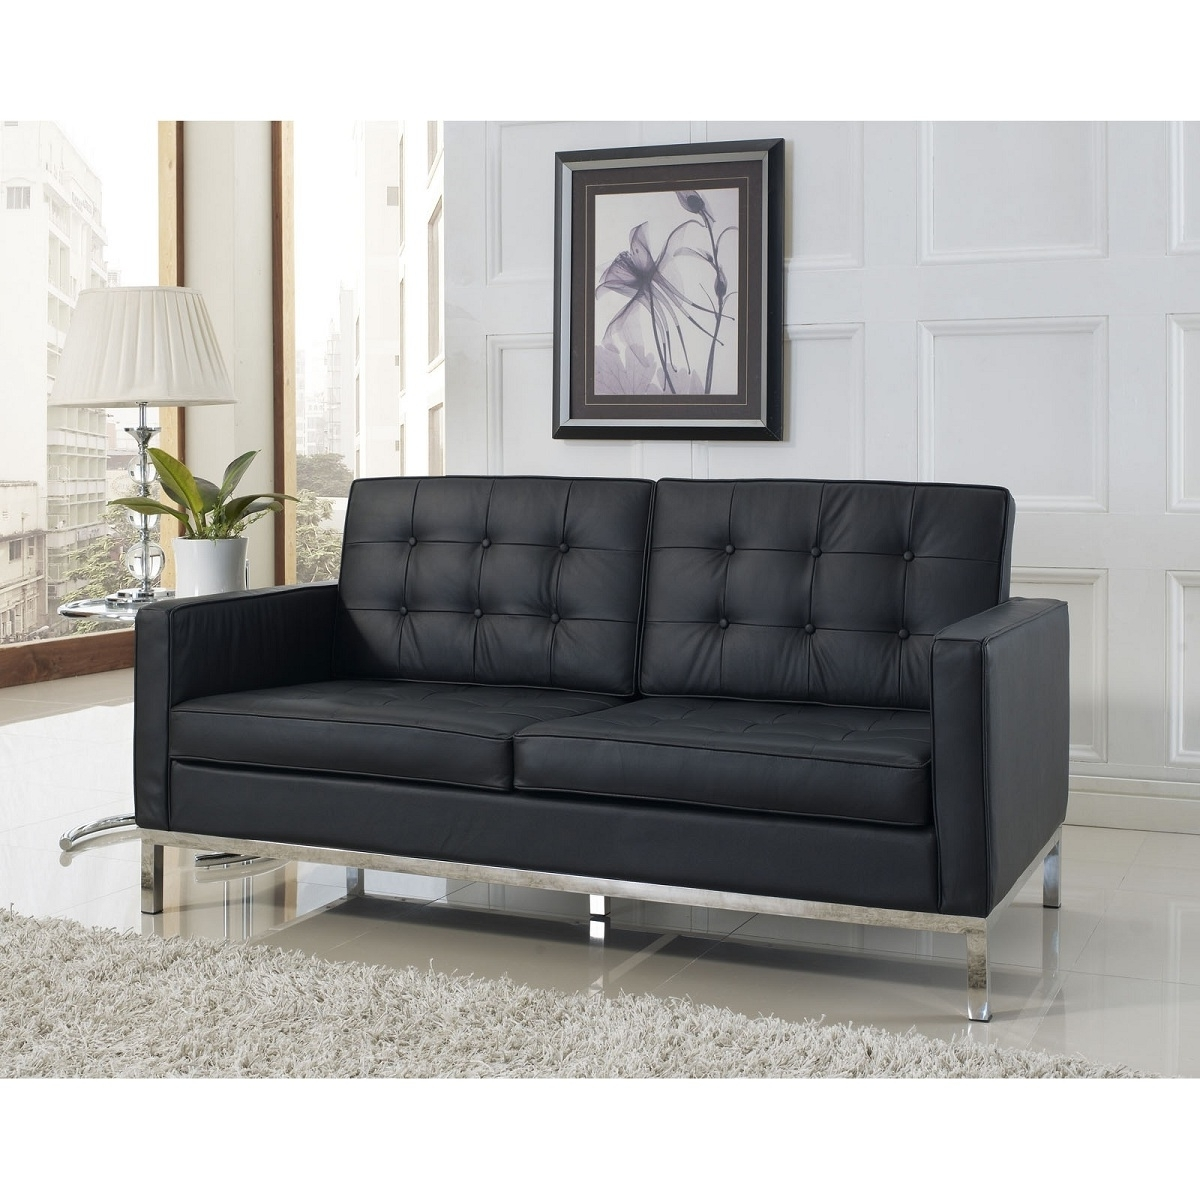 "Famous Florence Knoll Living Room Sofas Pertaining To Shop Florence 65"" Loveseat For Only $ (View 20 of 20)"